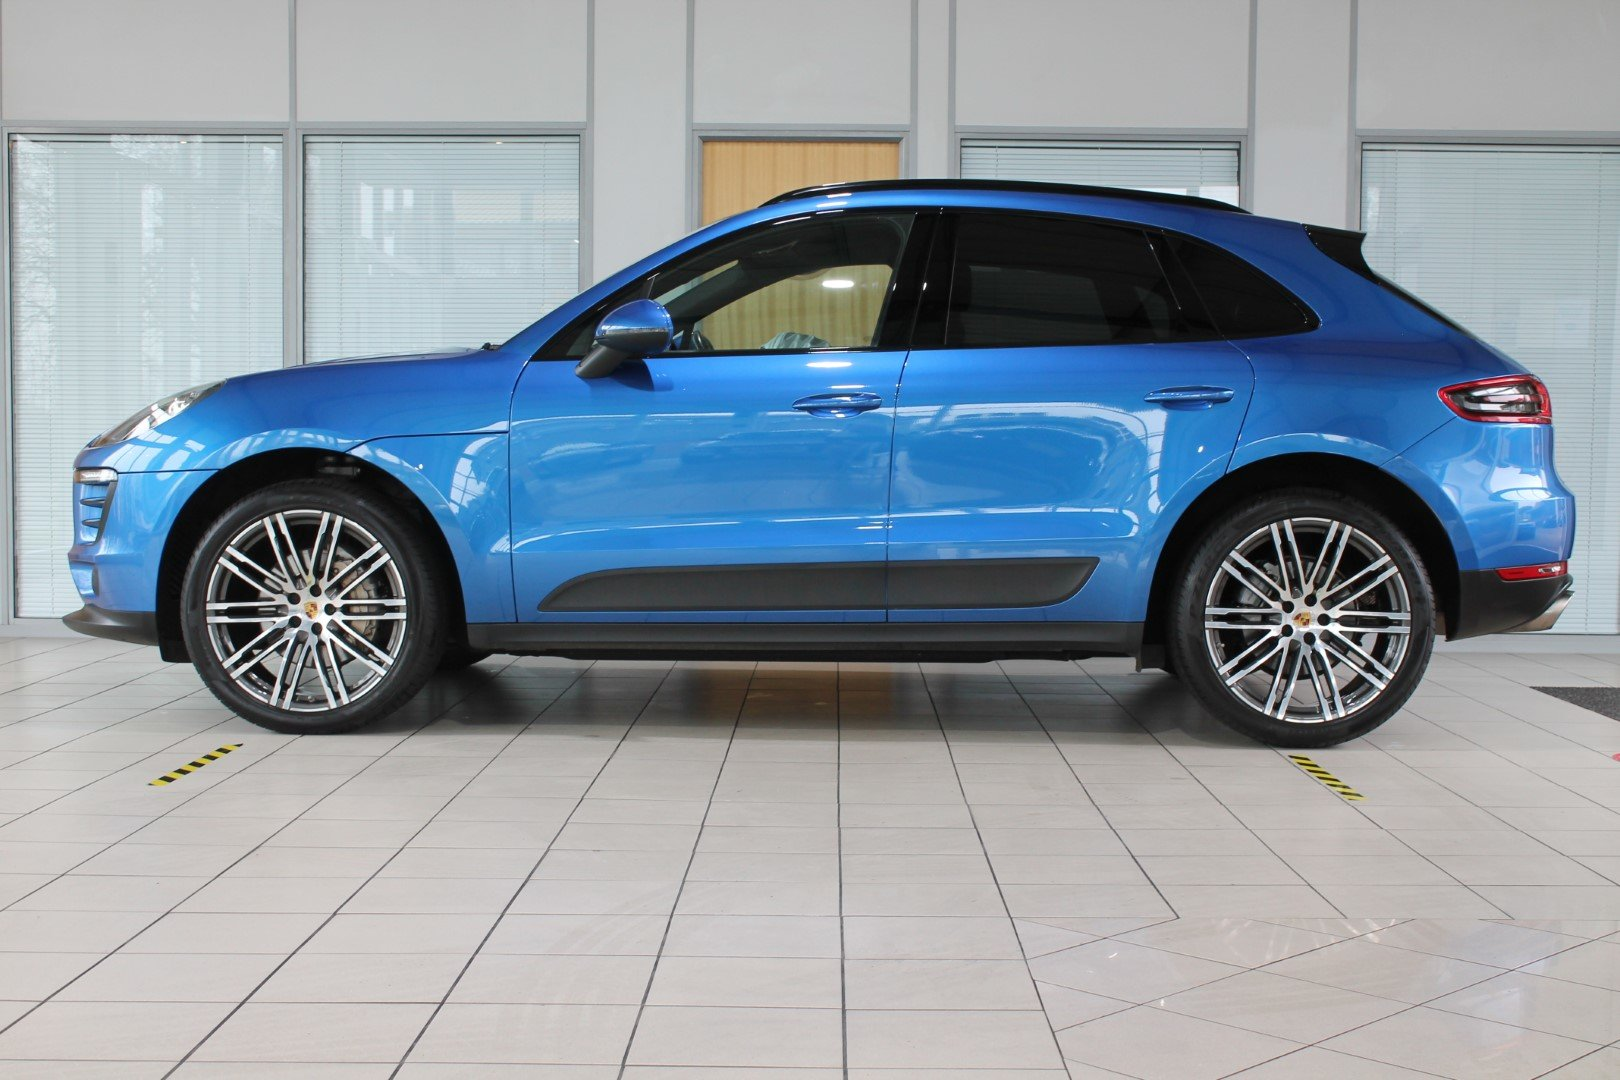 2016 Porsche Macan 3.0 S - NOW SOLD - MORE REQUIRED For Sale (picture 2 of 12)